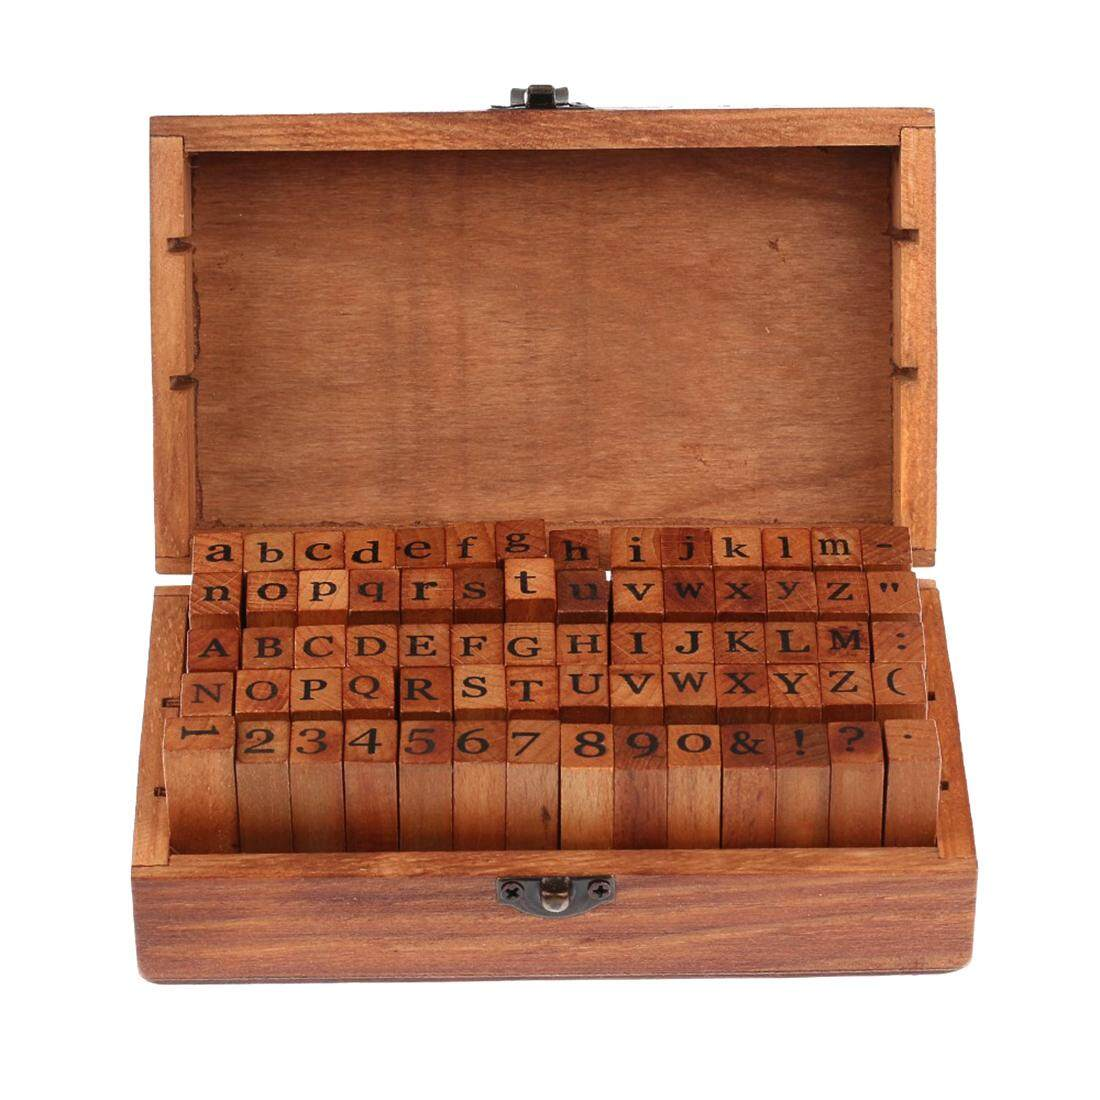 Big Sale 70pcs Vintage DIY Number And Alphabet Letter Wood Rubber Stamps Set With Wooden Box For Teaching And Play Games - intl